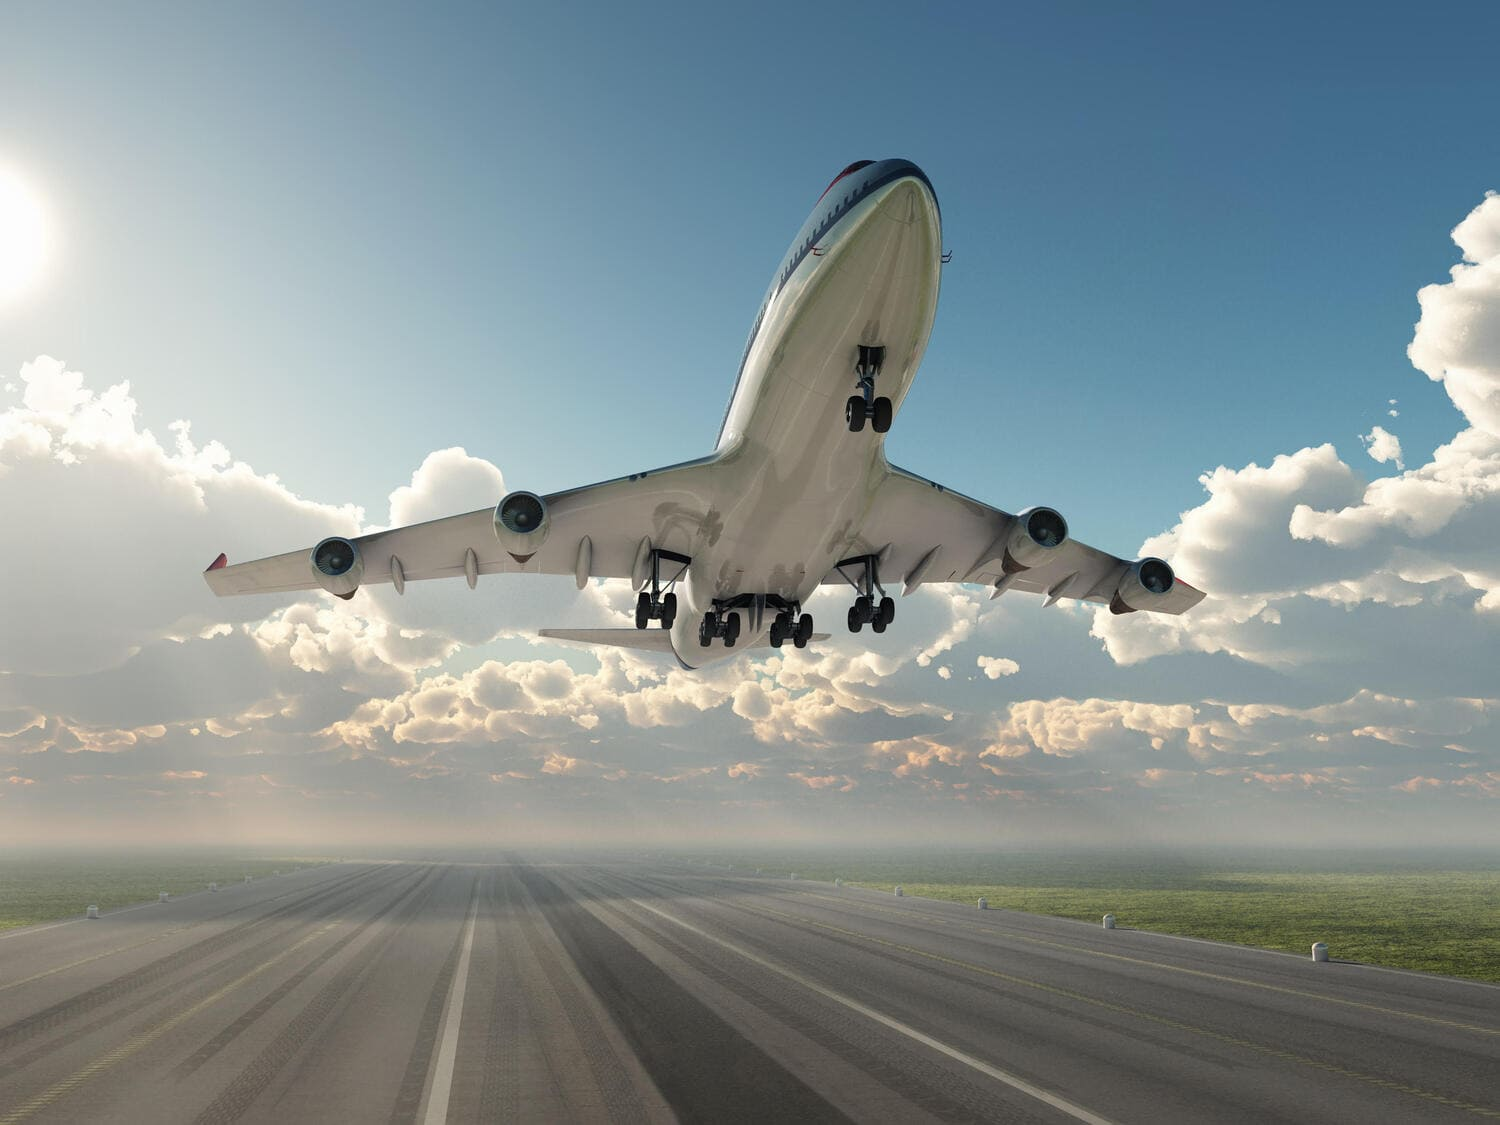 Cyient expands its Digital Solutions portfolio for the Aerospace industry with PPAP4Aero